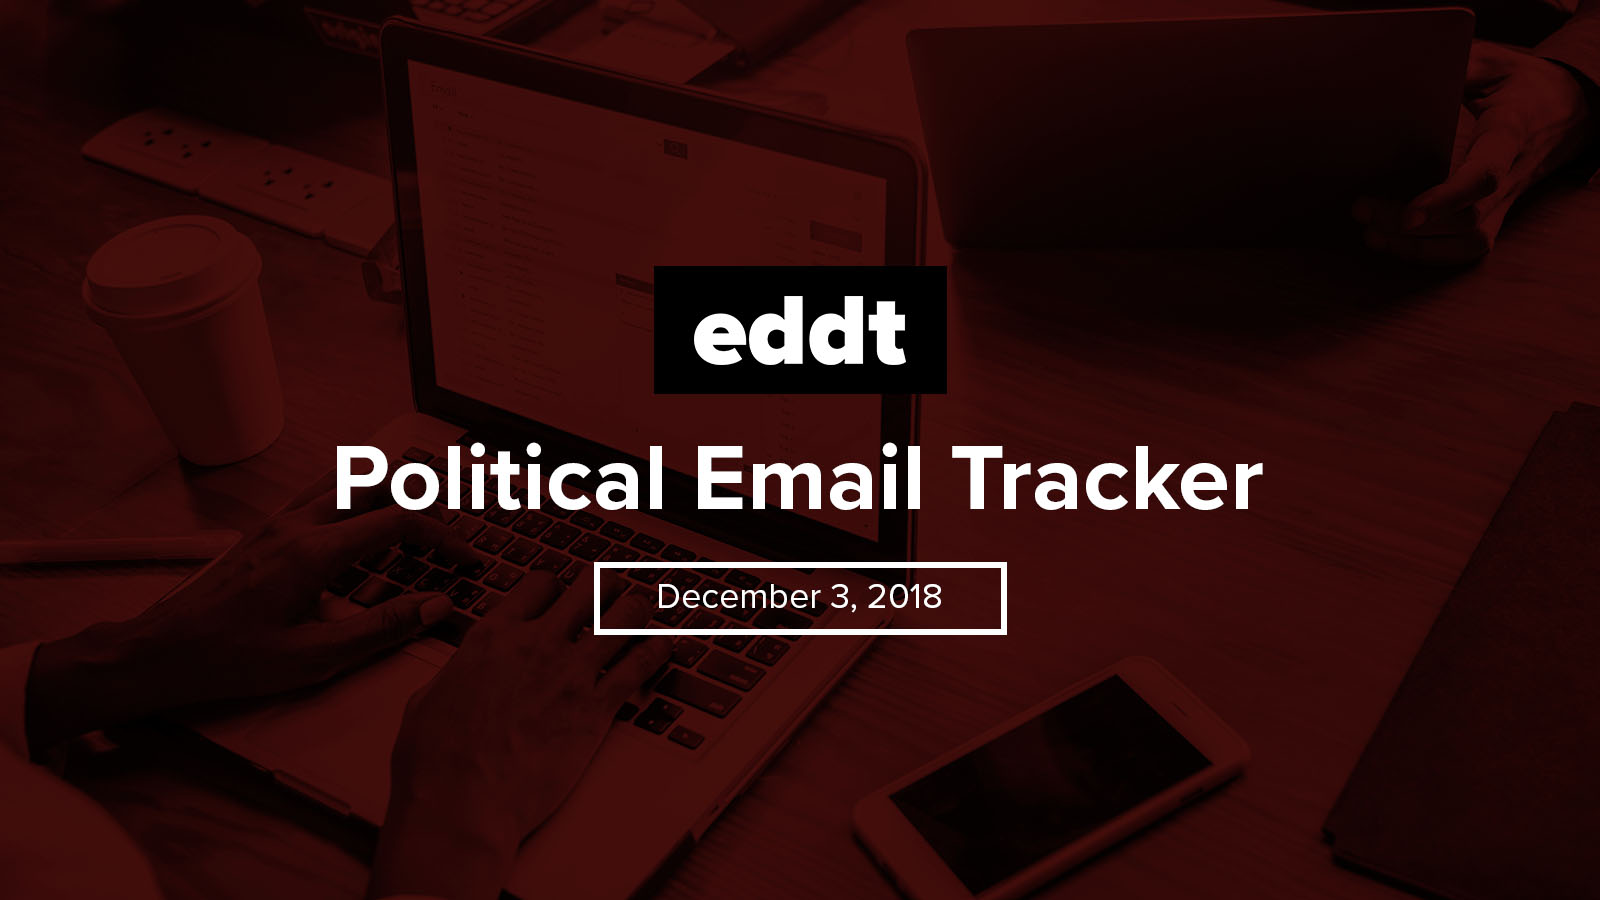 Political Email Tracker - December 3, 2018